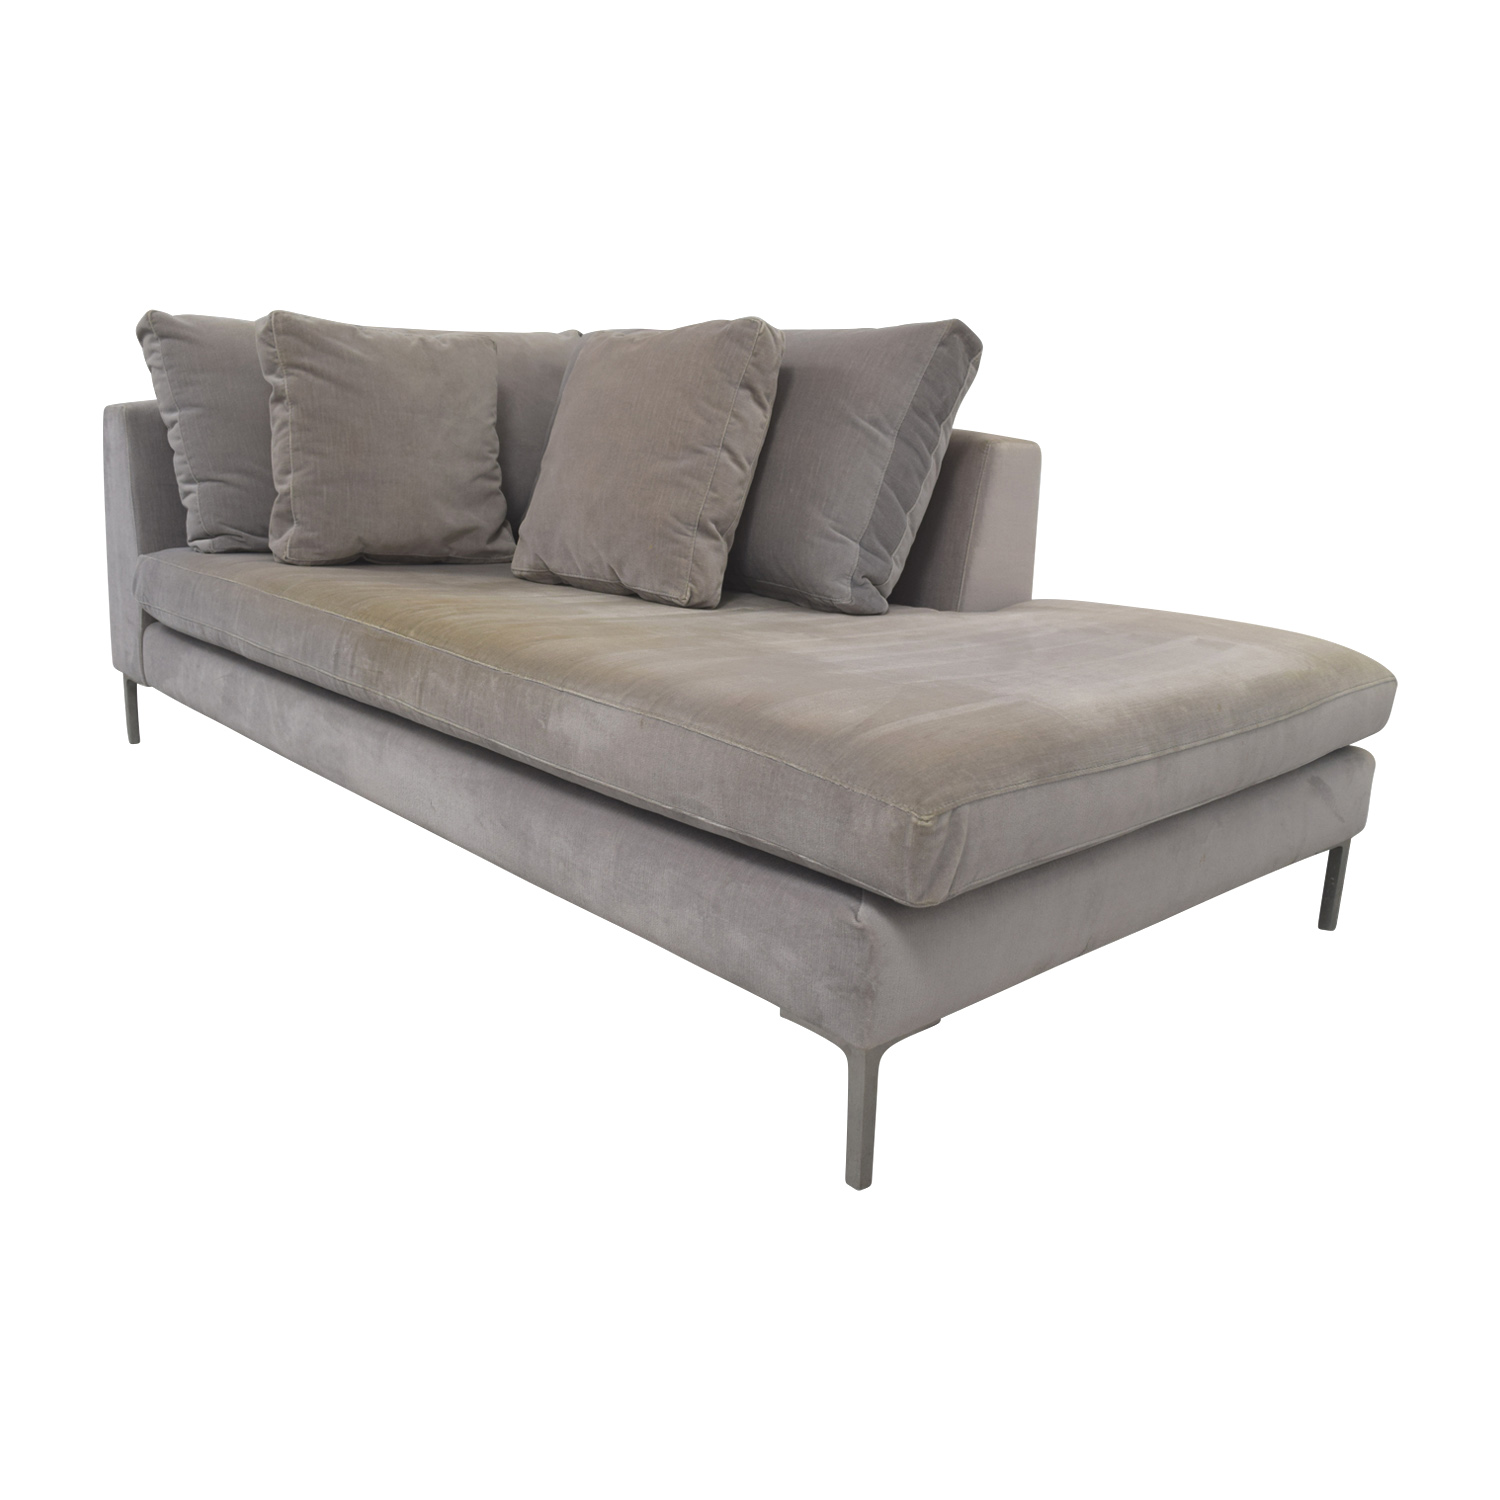 ABC Carpet and Home ABC Right Arm Velvet Chaise for sale